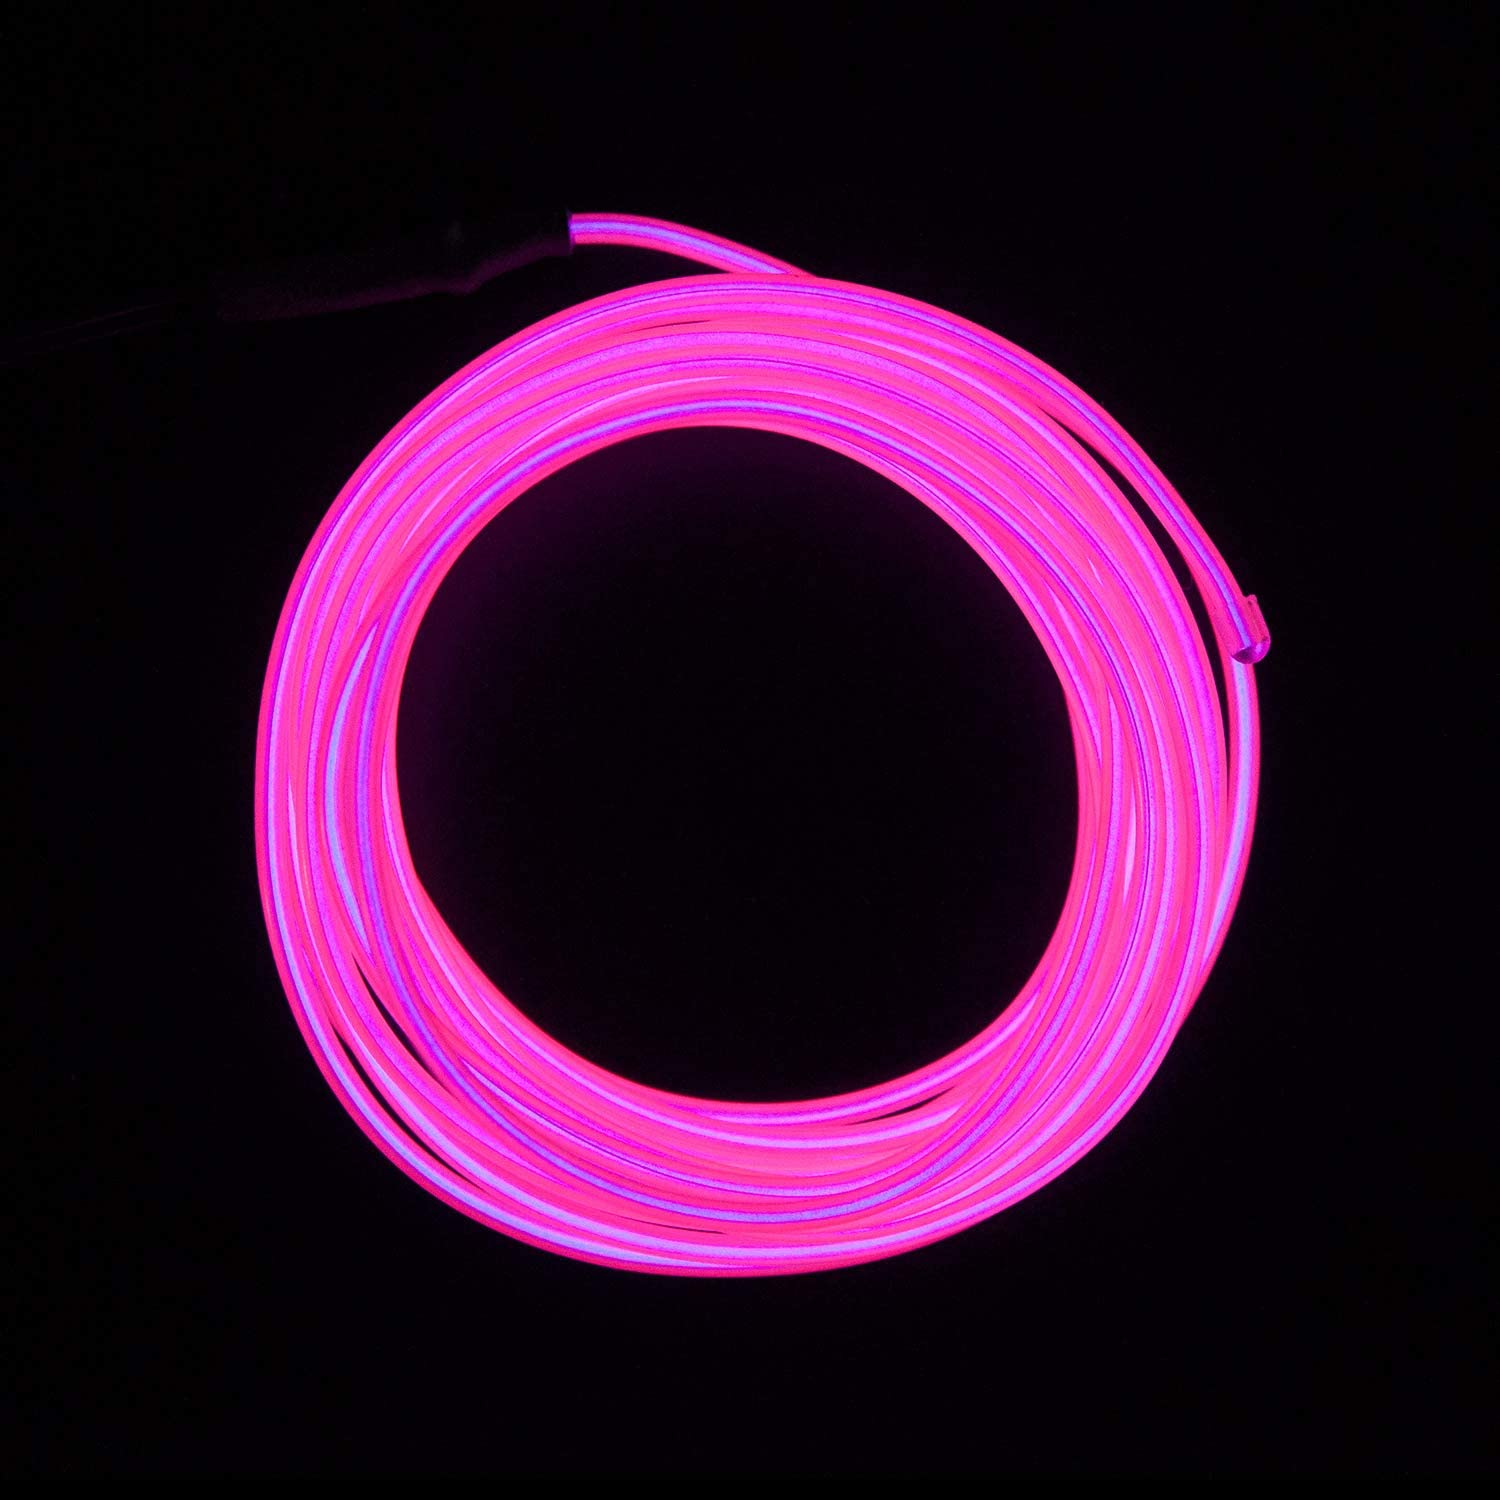 Blue El Wire Lychee/Â/® 9ft 3m Blue Neon Glowing Strobing Electroluminescent Wire